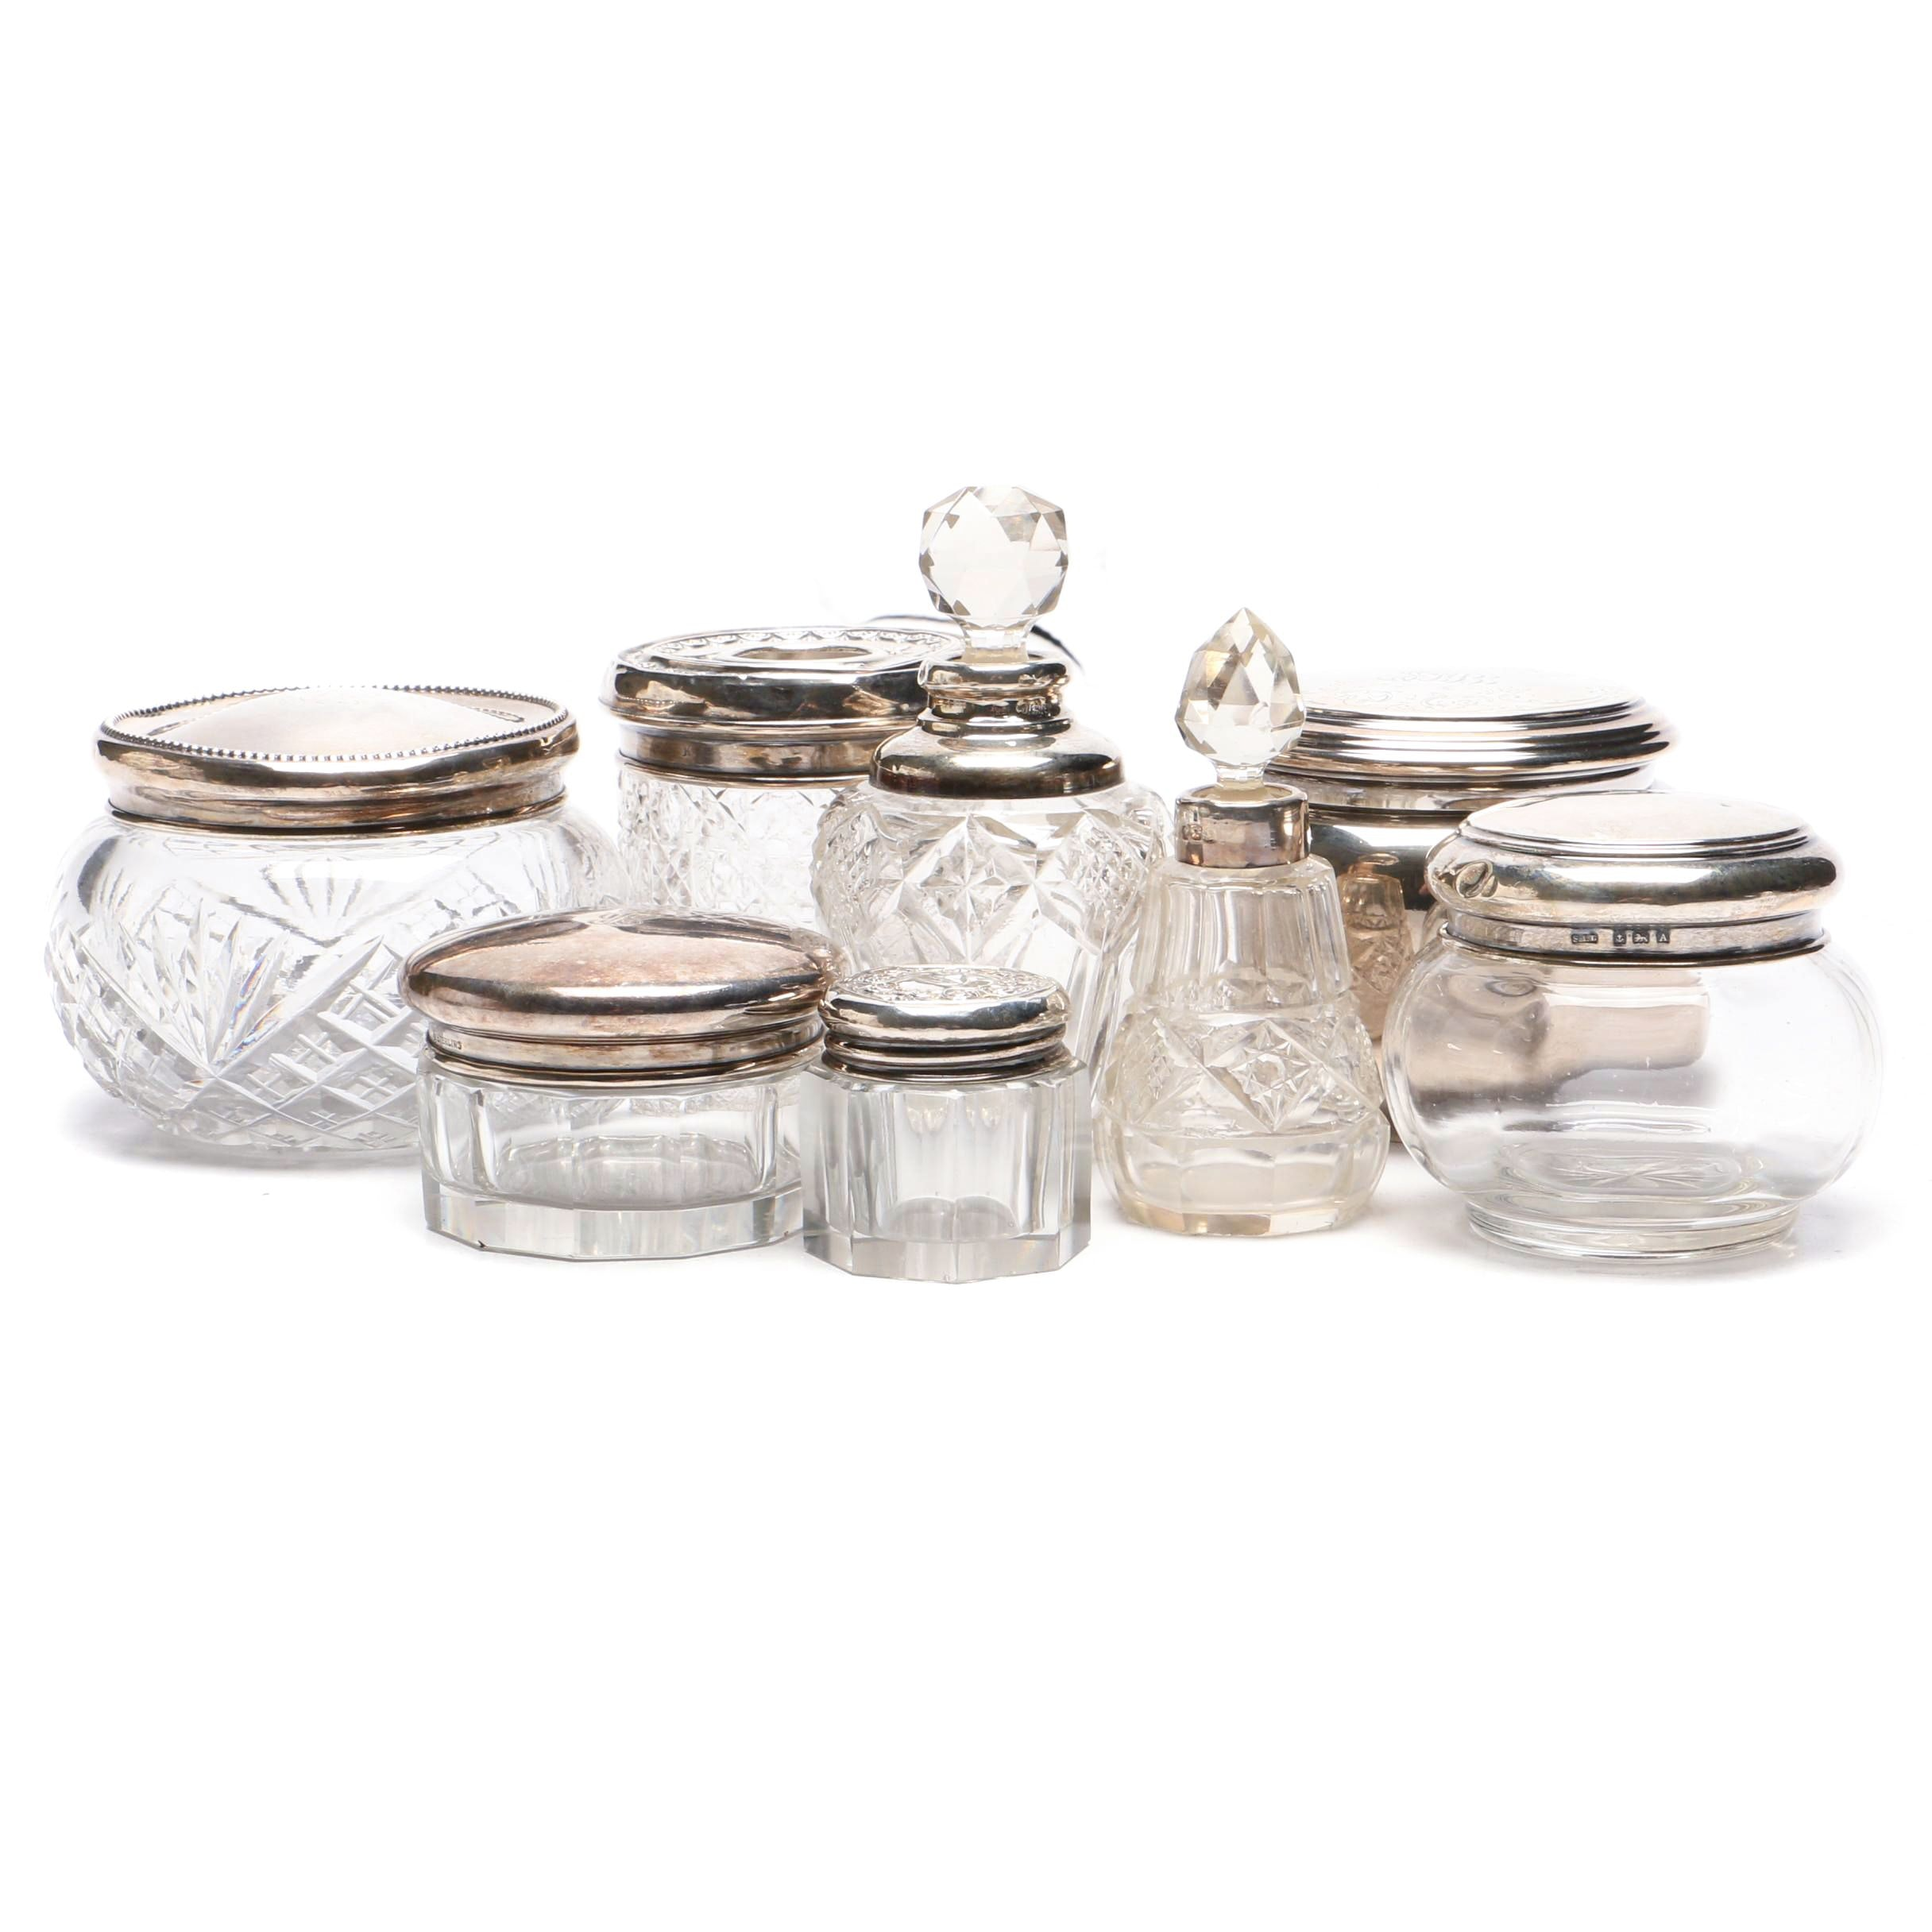 Theodore B. Starr Sterling Silver Puff Jar and Vanity Group, Early 20th Century